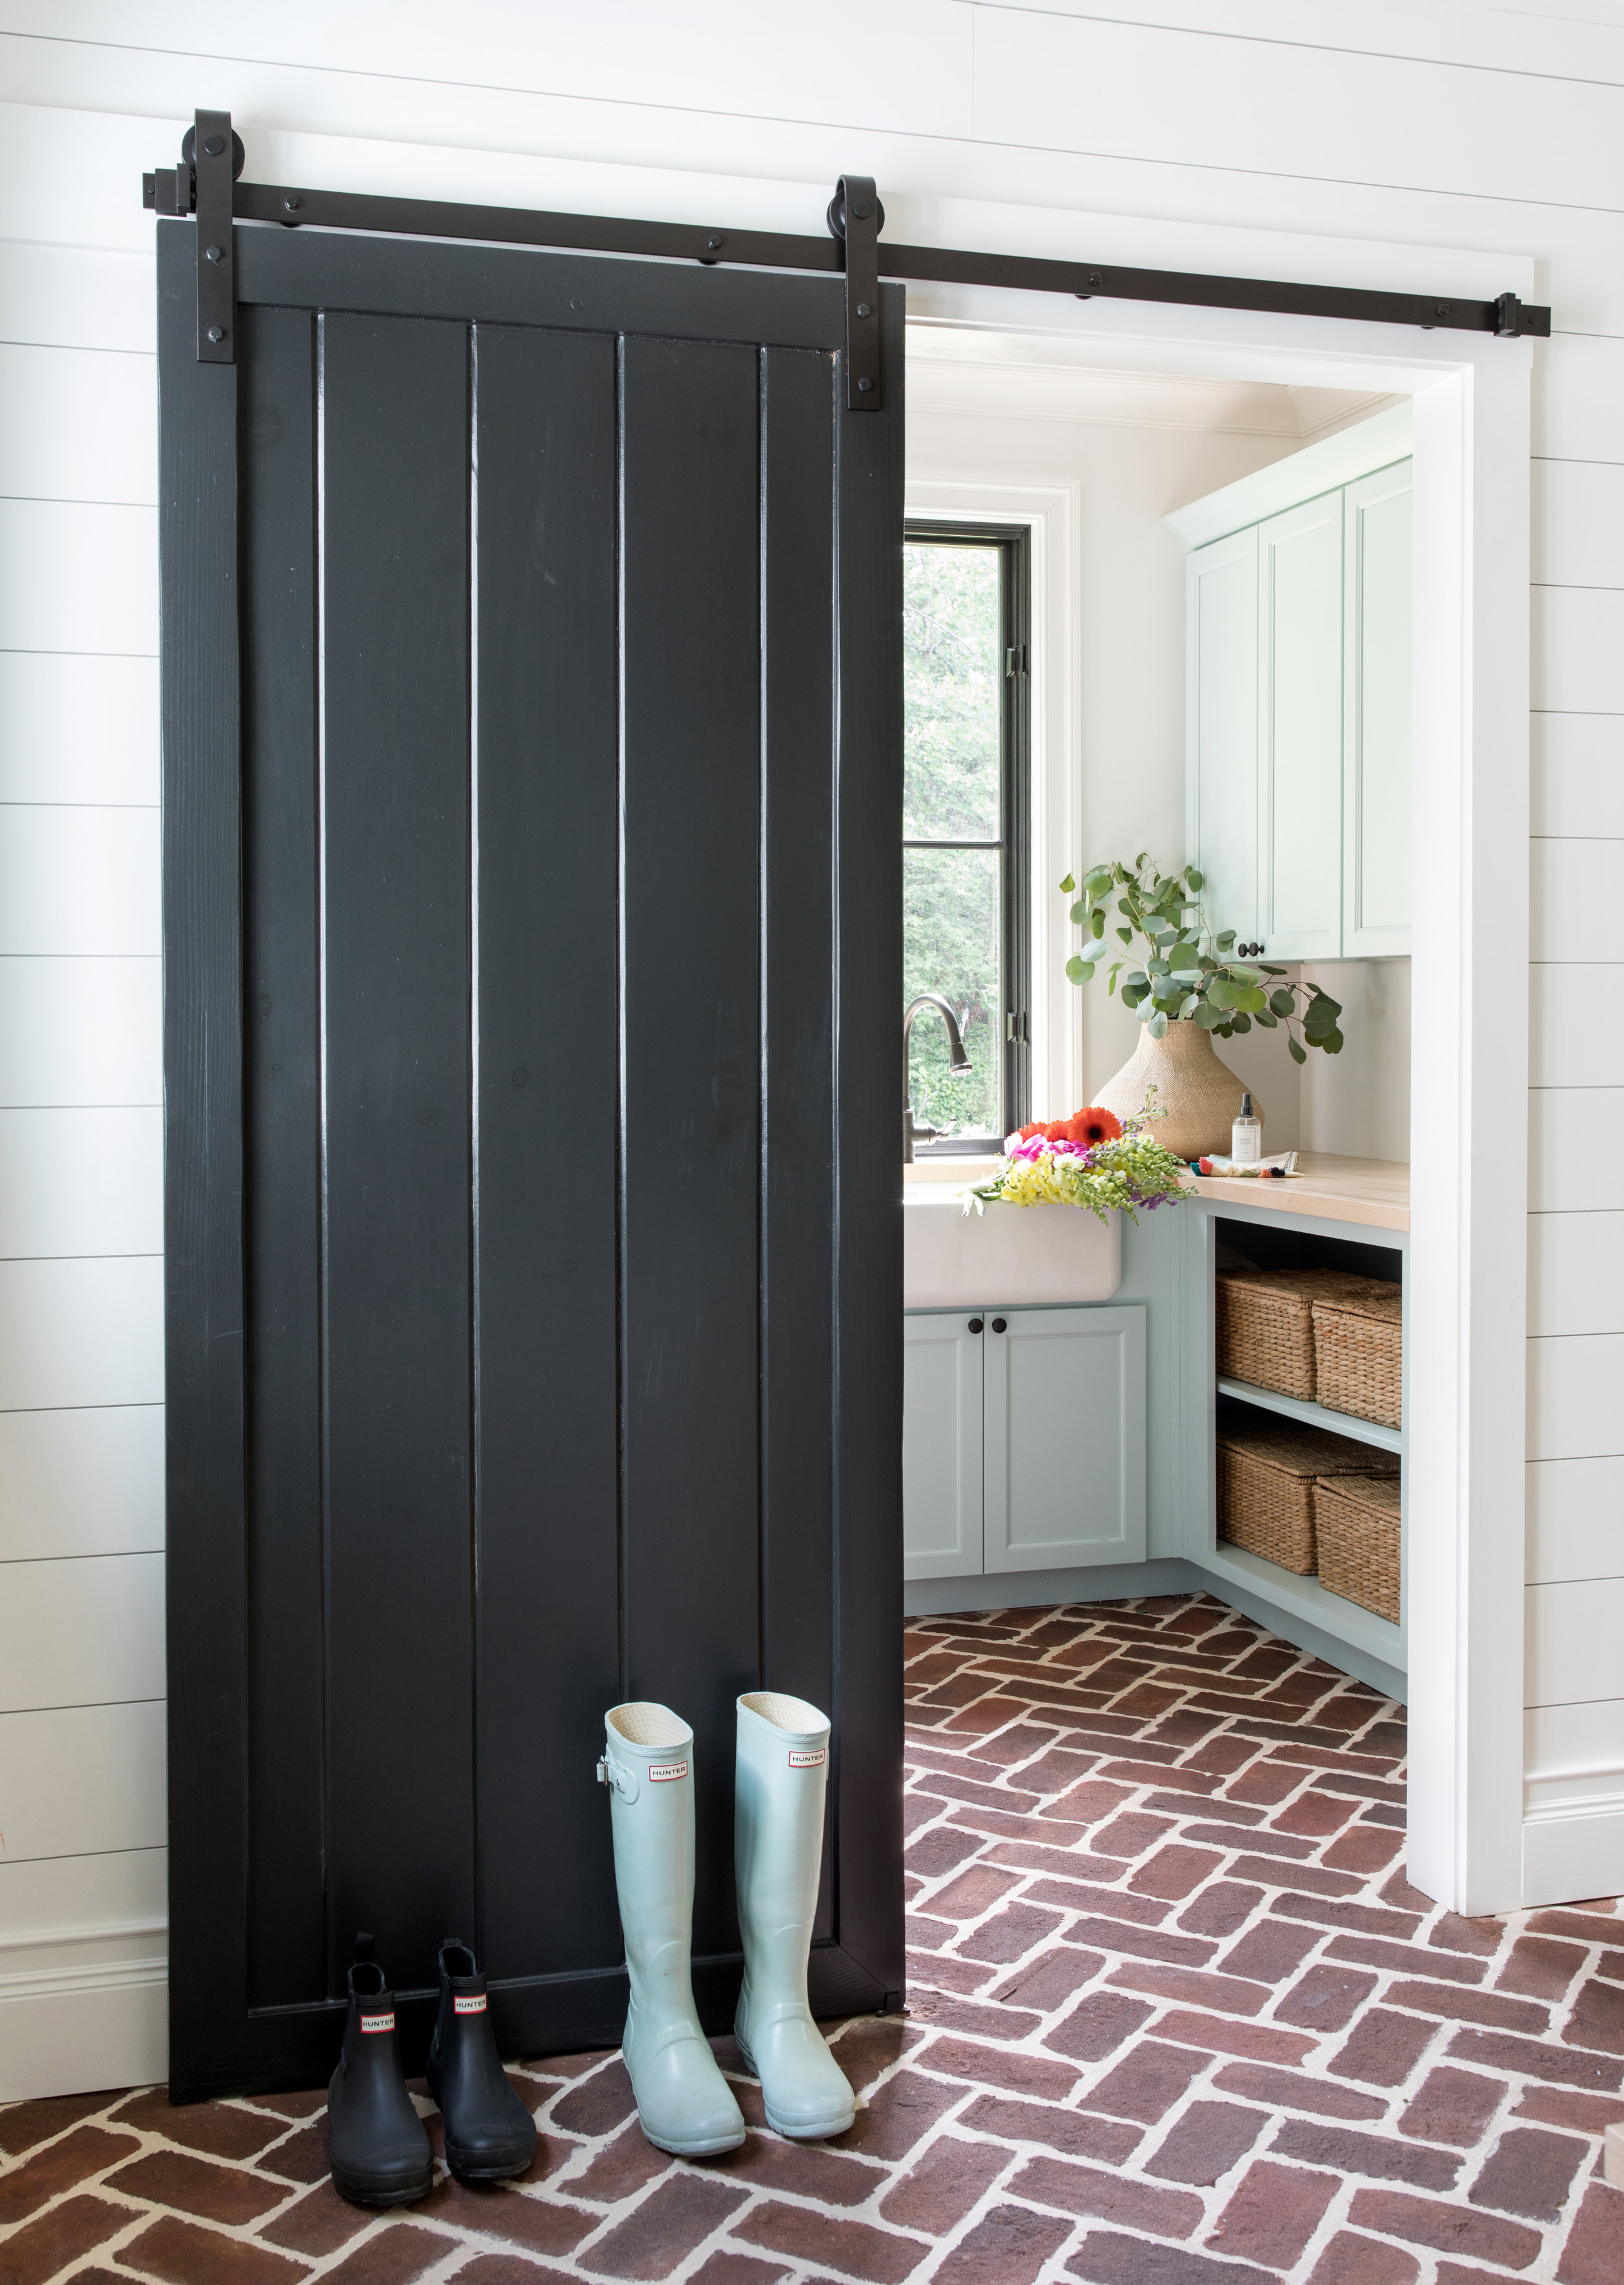 Mudroom Barn Door Brick Flooring Blue Cabinets Modern Farmhouse Stephanie Kraus Designs